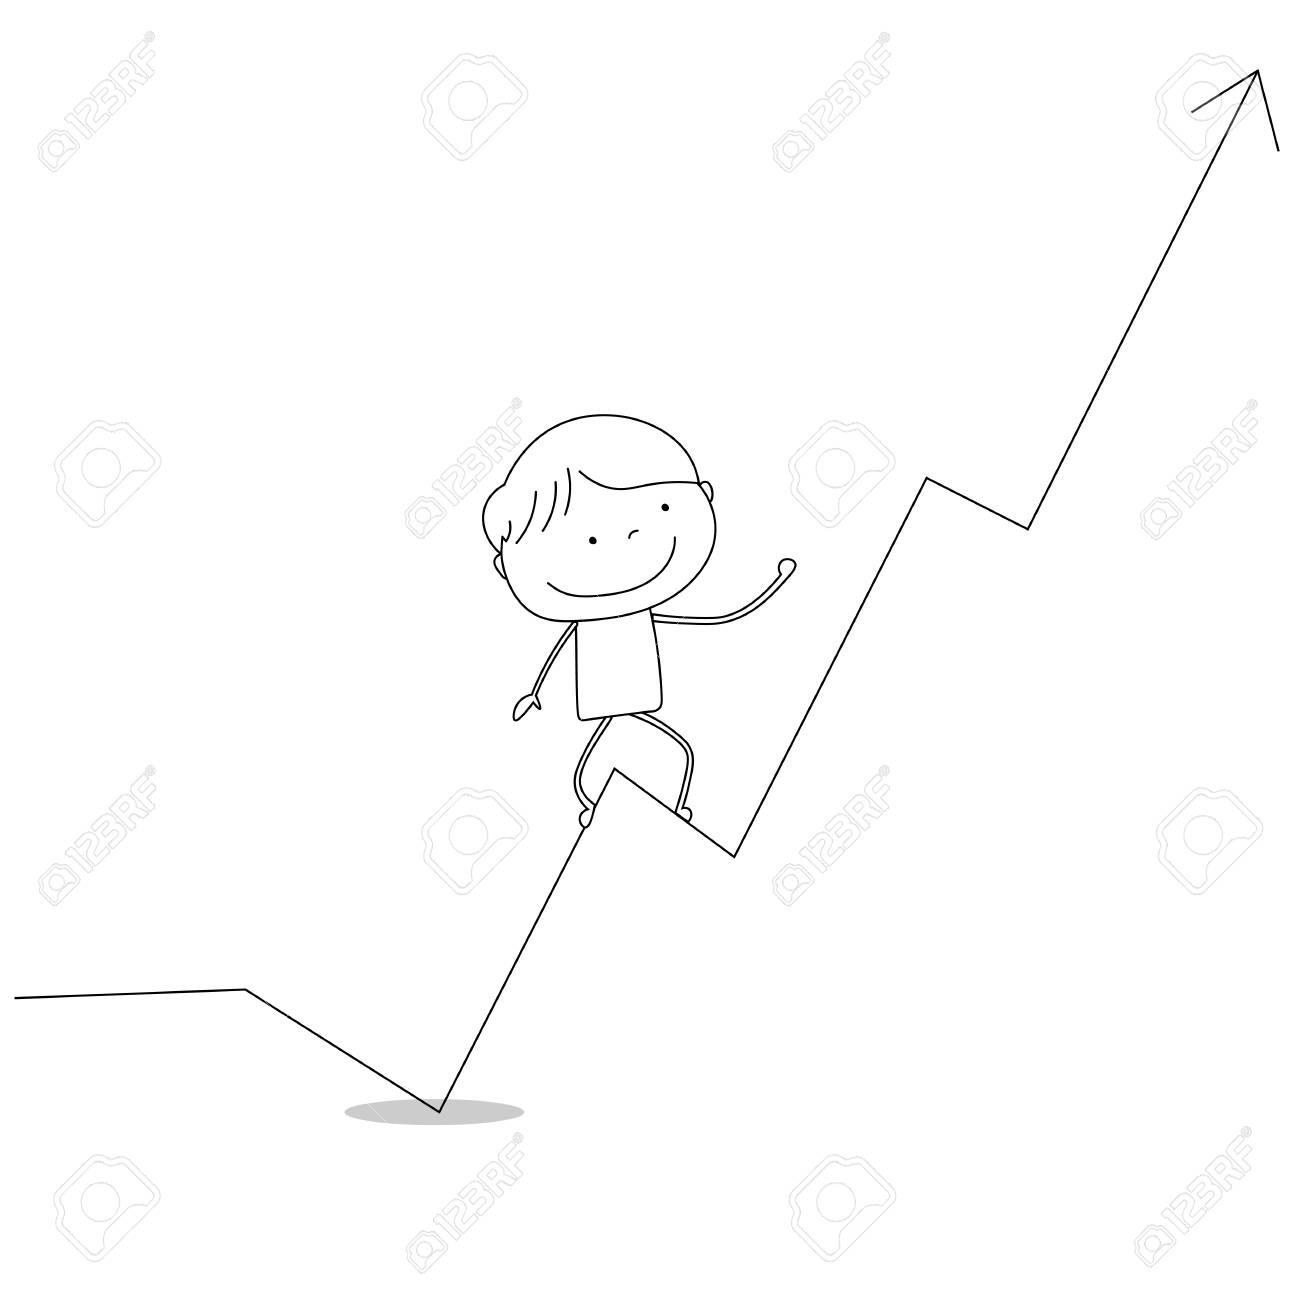 hight resolution of boy climbing business diagram chart up hand drawn cartoon style illustration sketch stock illustration